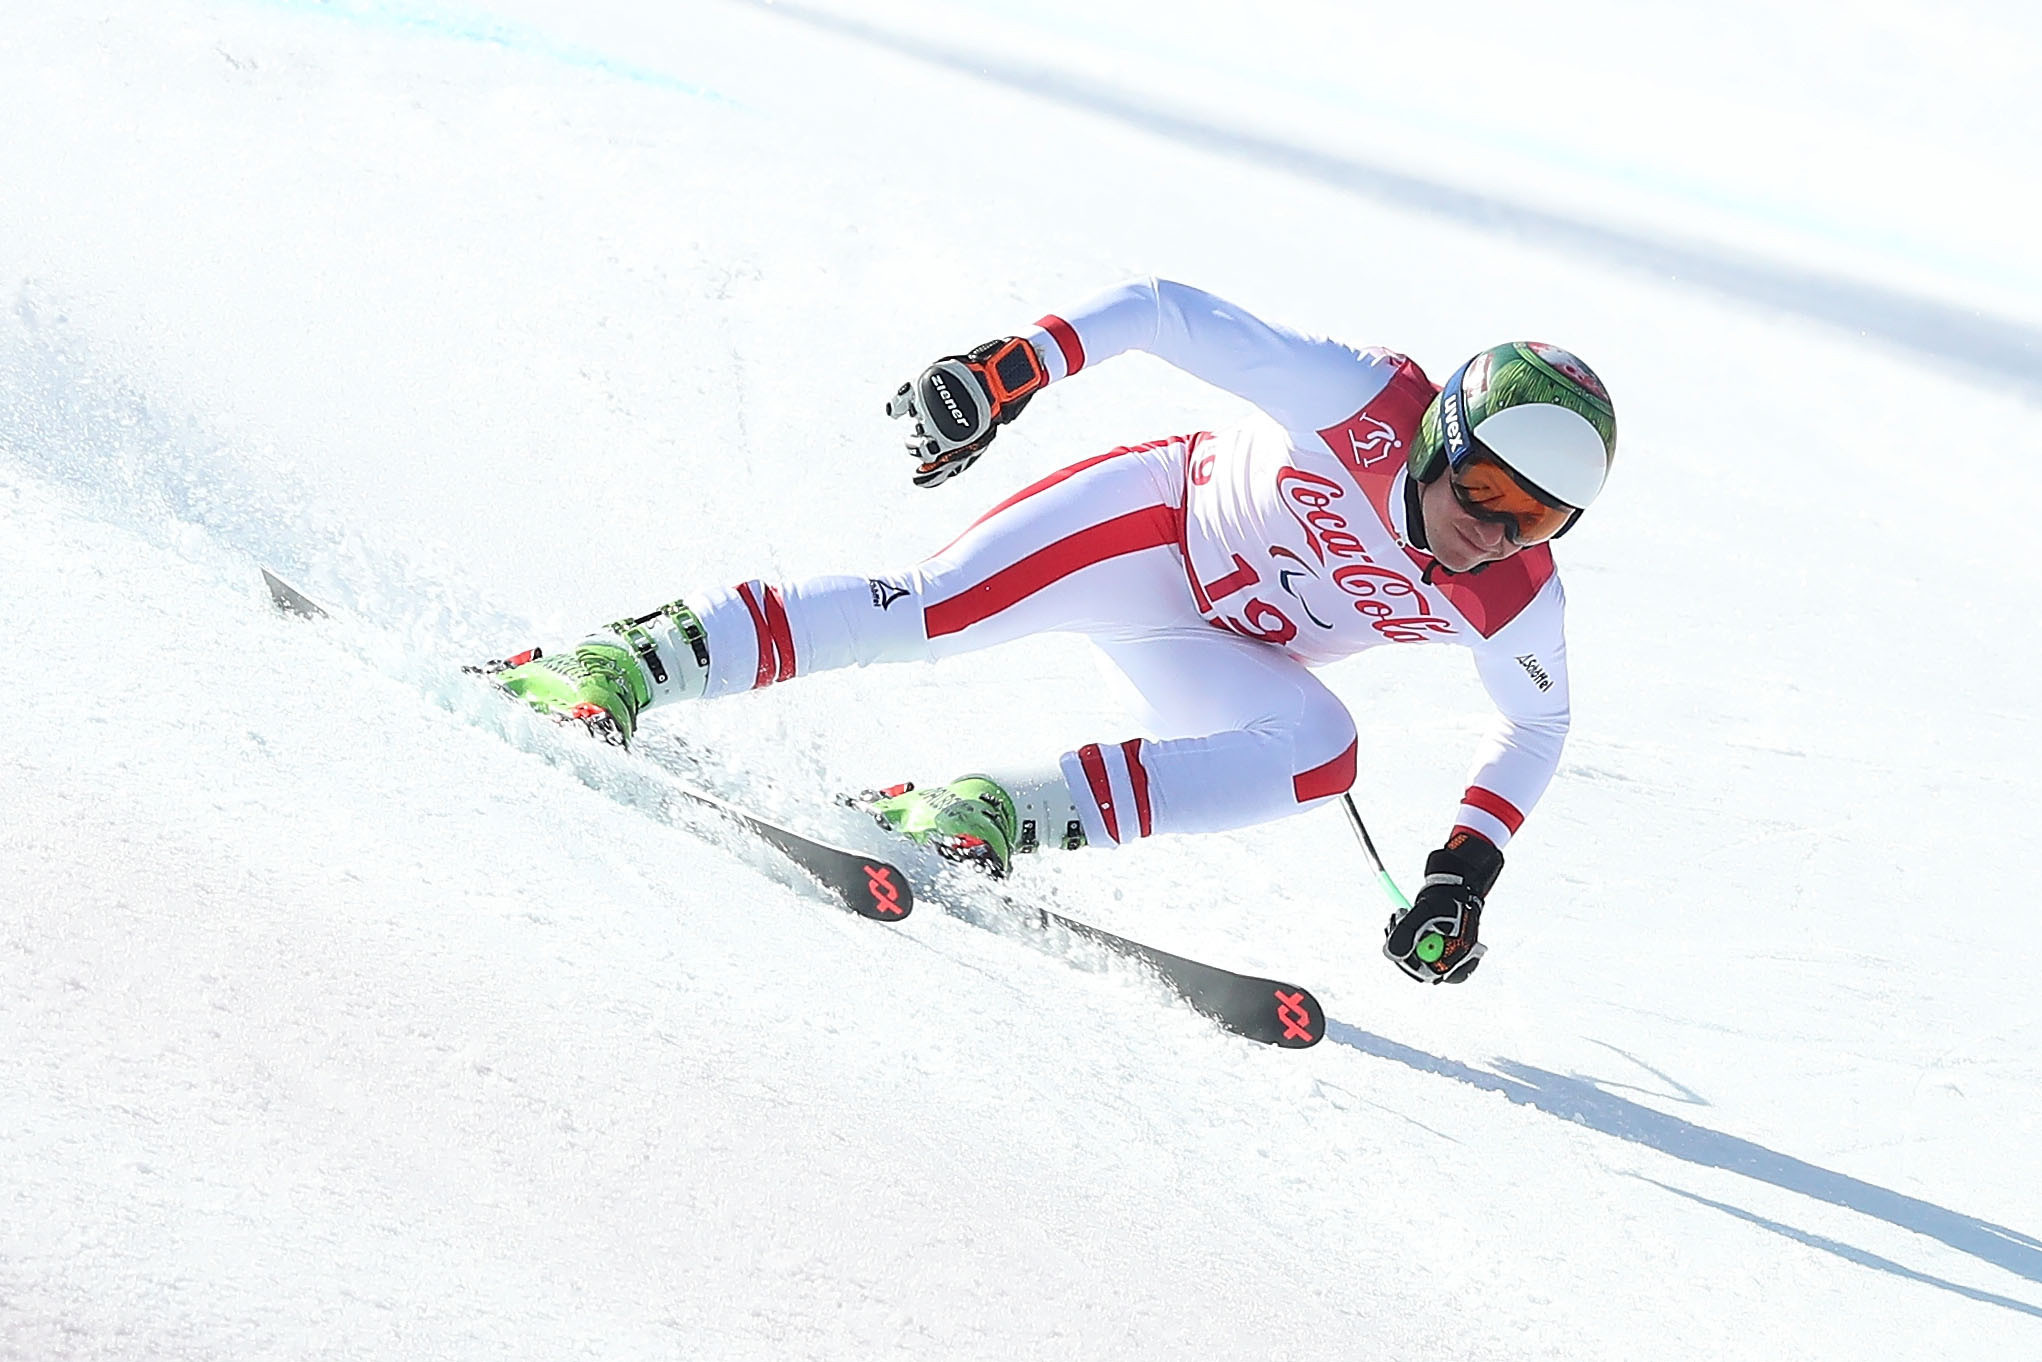 Austria secure double gold in giant slalom at World Para Alpine Skiing Europa Cup Finals